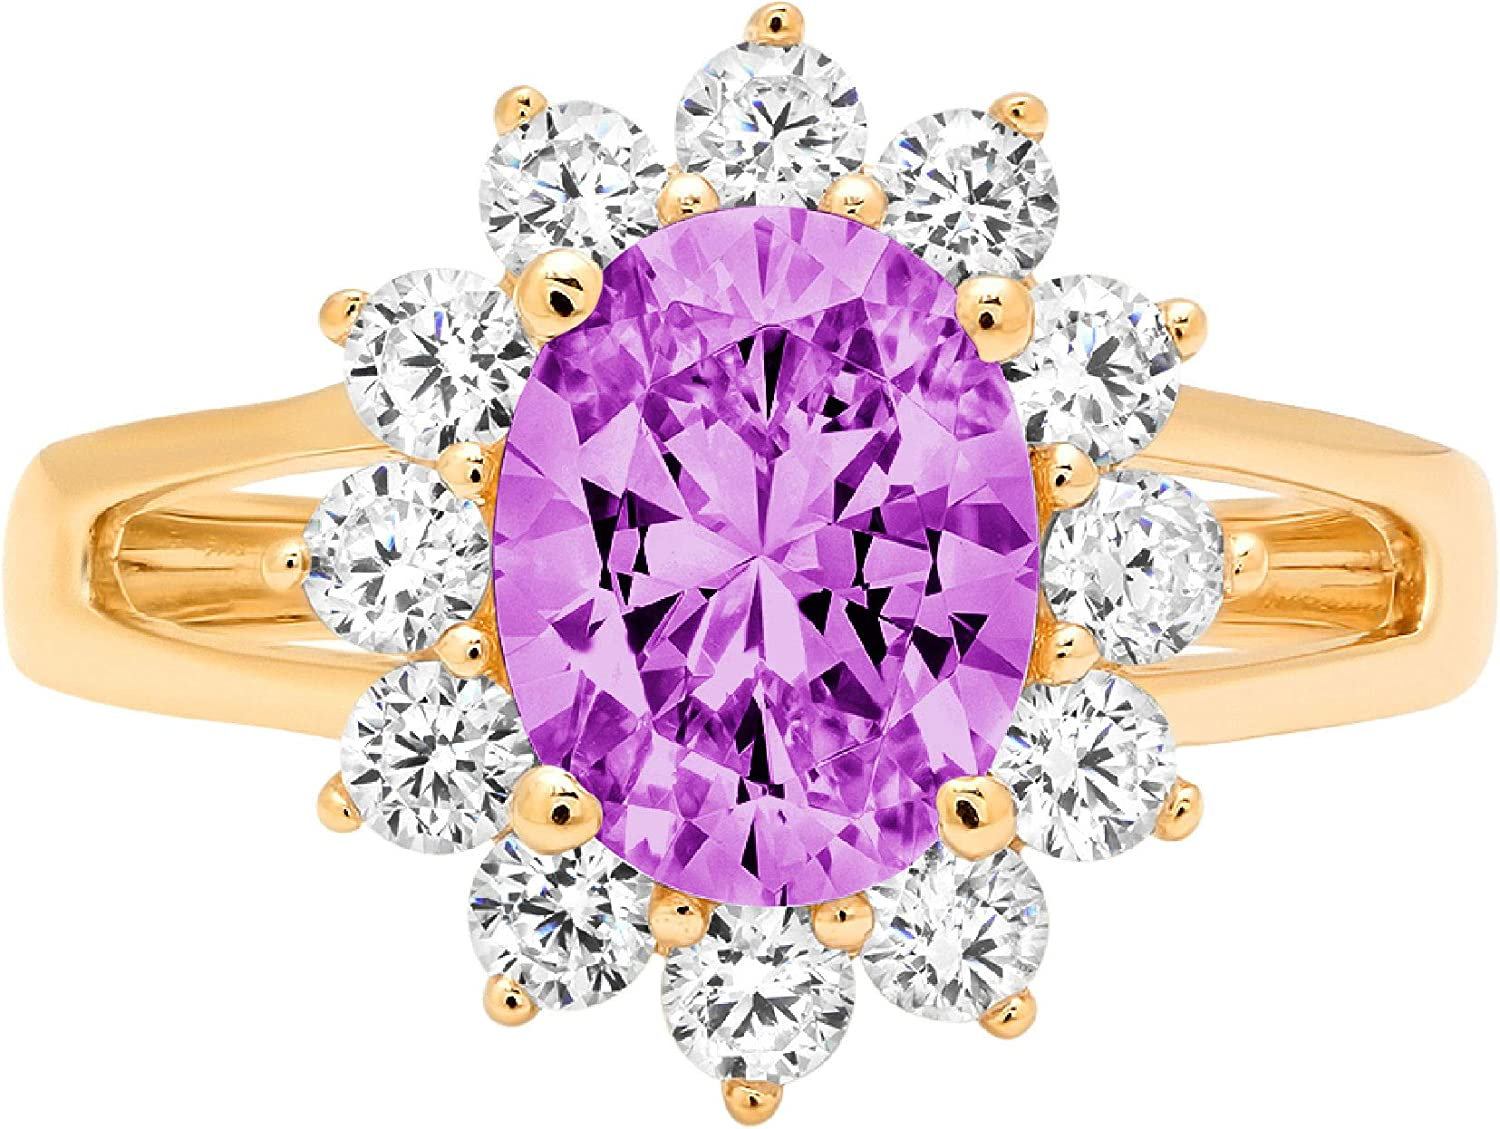 2.36ct Brilliant Oval Cut Solitaire with Accent Halo Flawless Simulated Purple Alexandrite Ideal Engagement Promise Anniversary Bridal Wedding Designer Ring 14k Yellow Gold